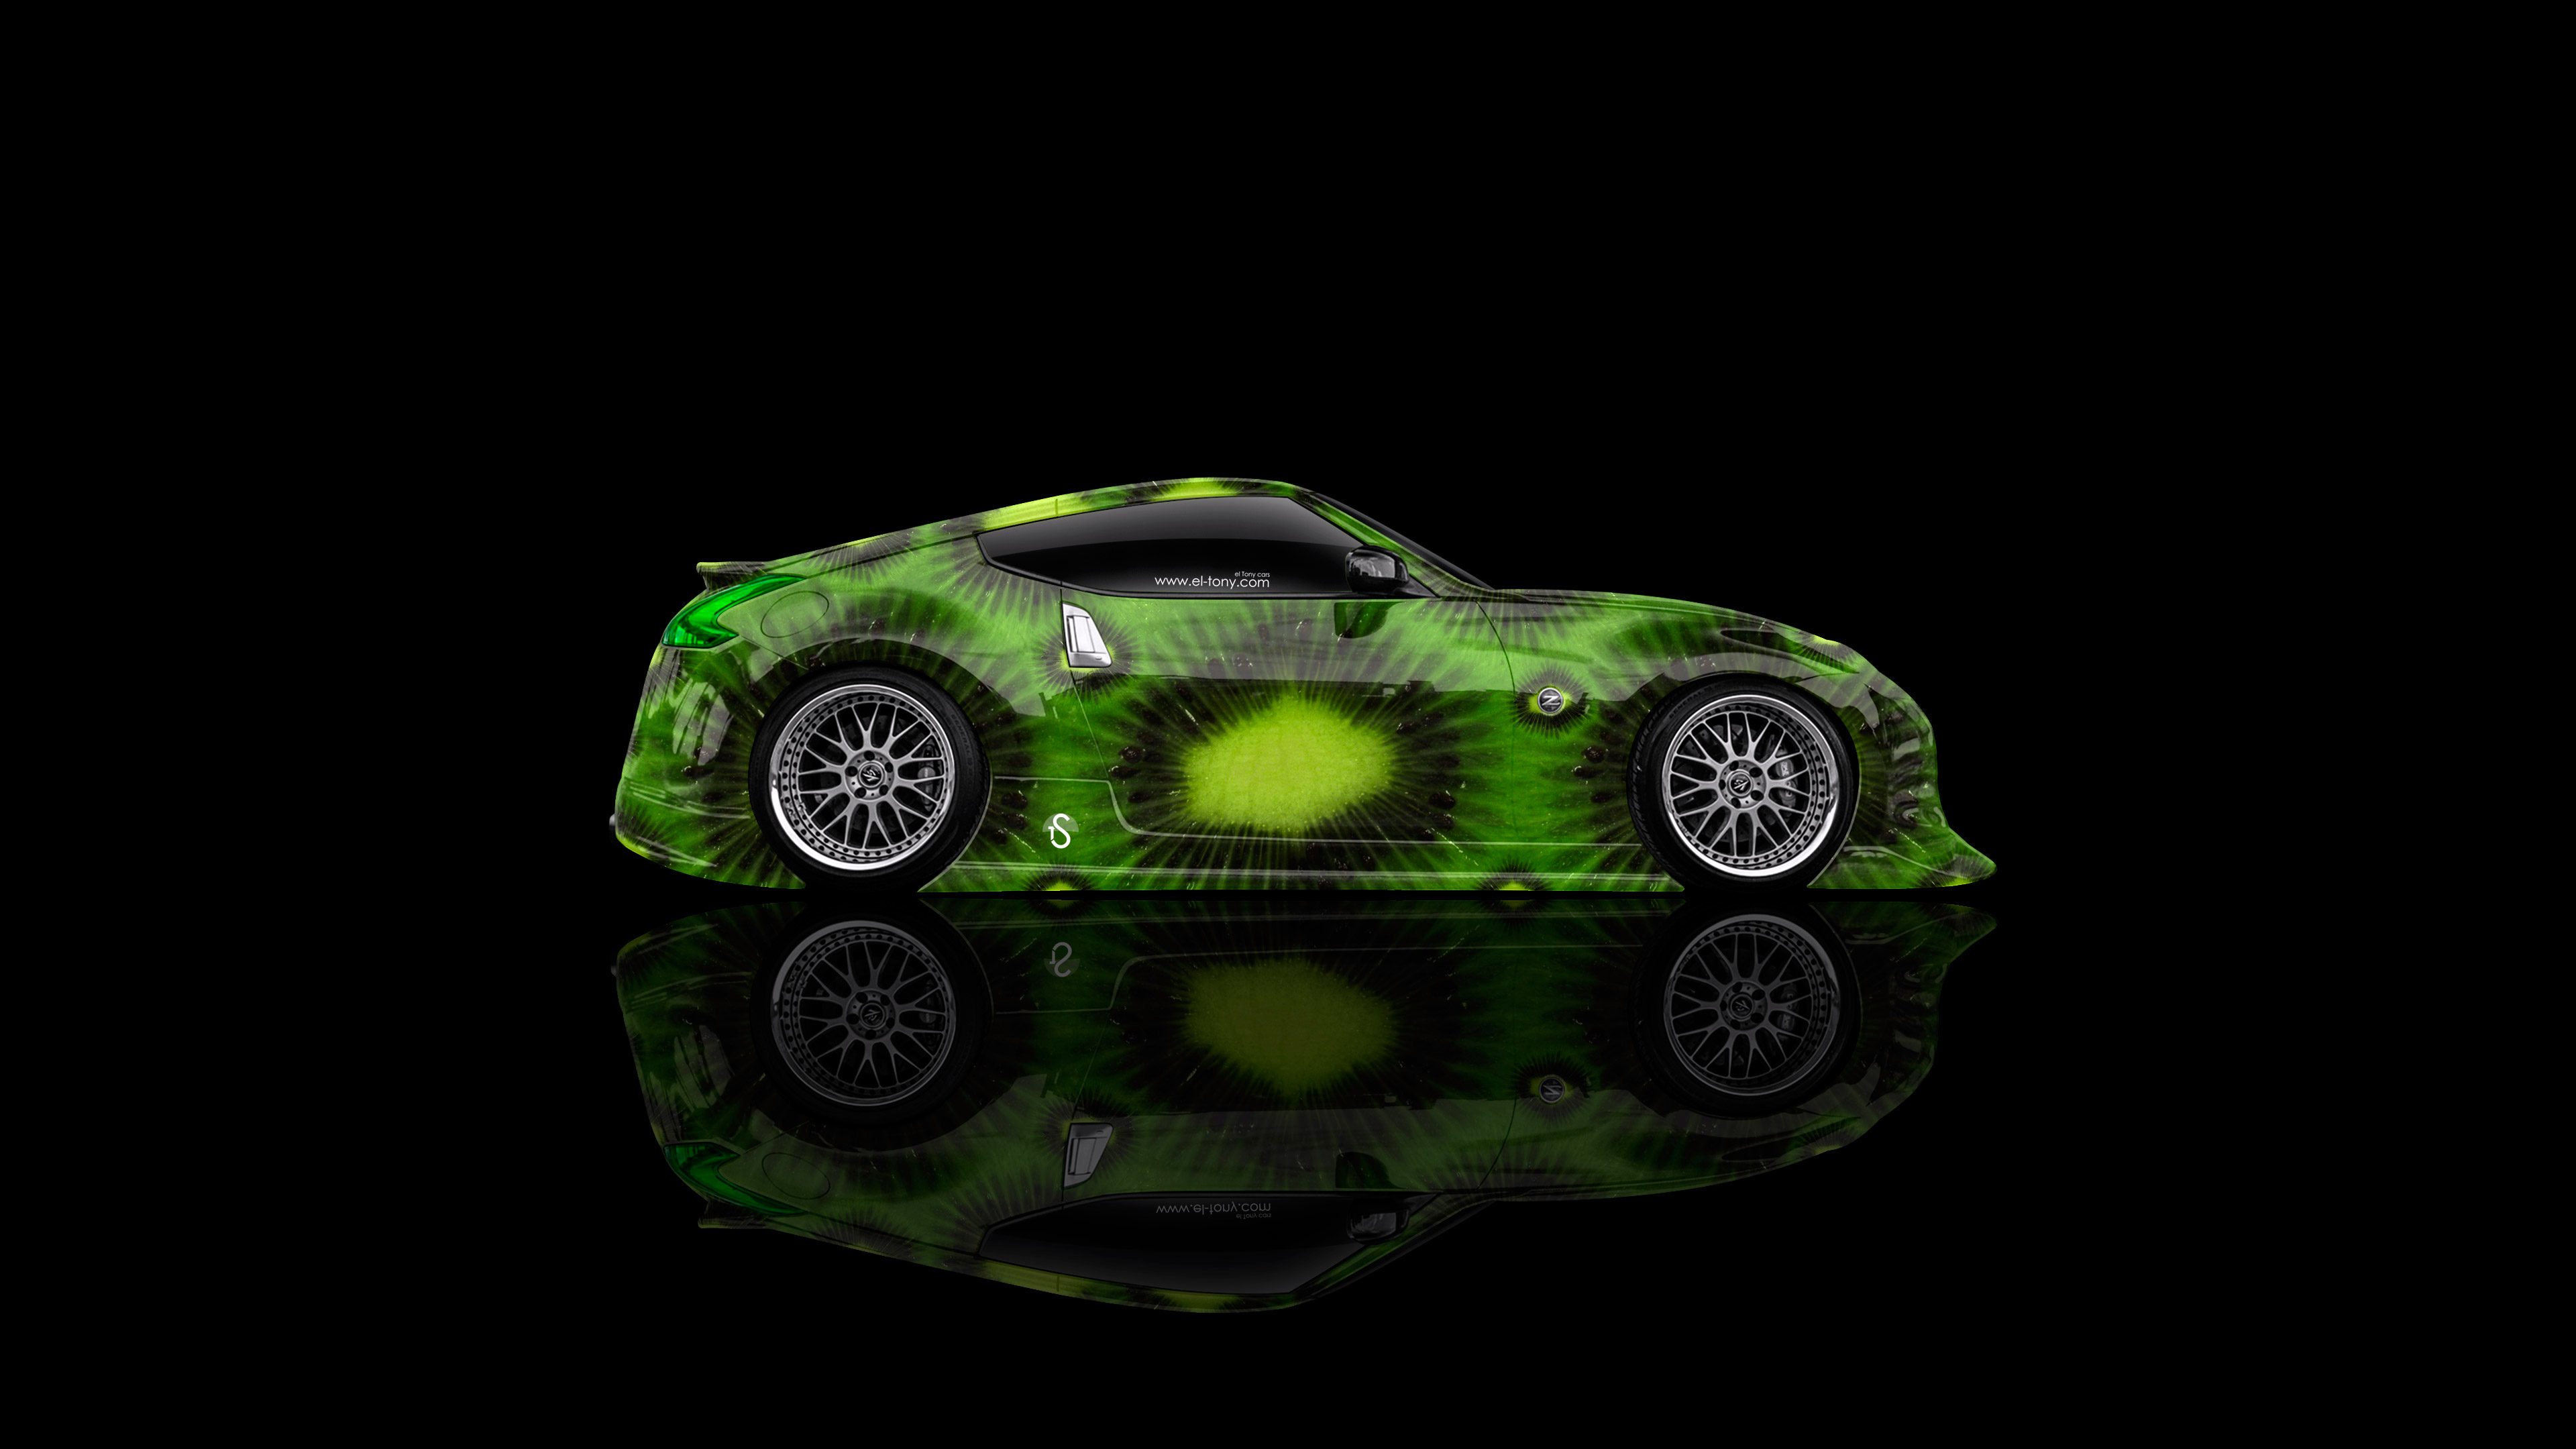 Nissan-370Z-JDM-Side-Kiwi-Aerography-Car-2014-Green-Colors-4K-Wallpapers-design-by-Tony-Kokhan-[www.el-tony.com]